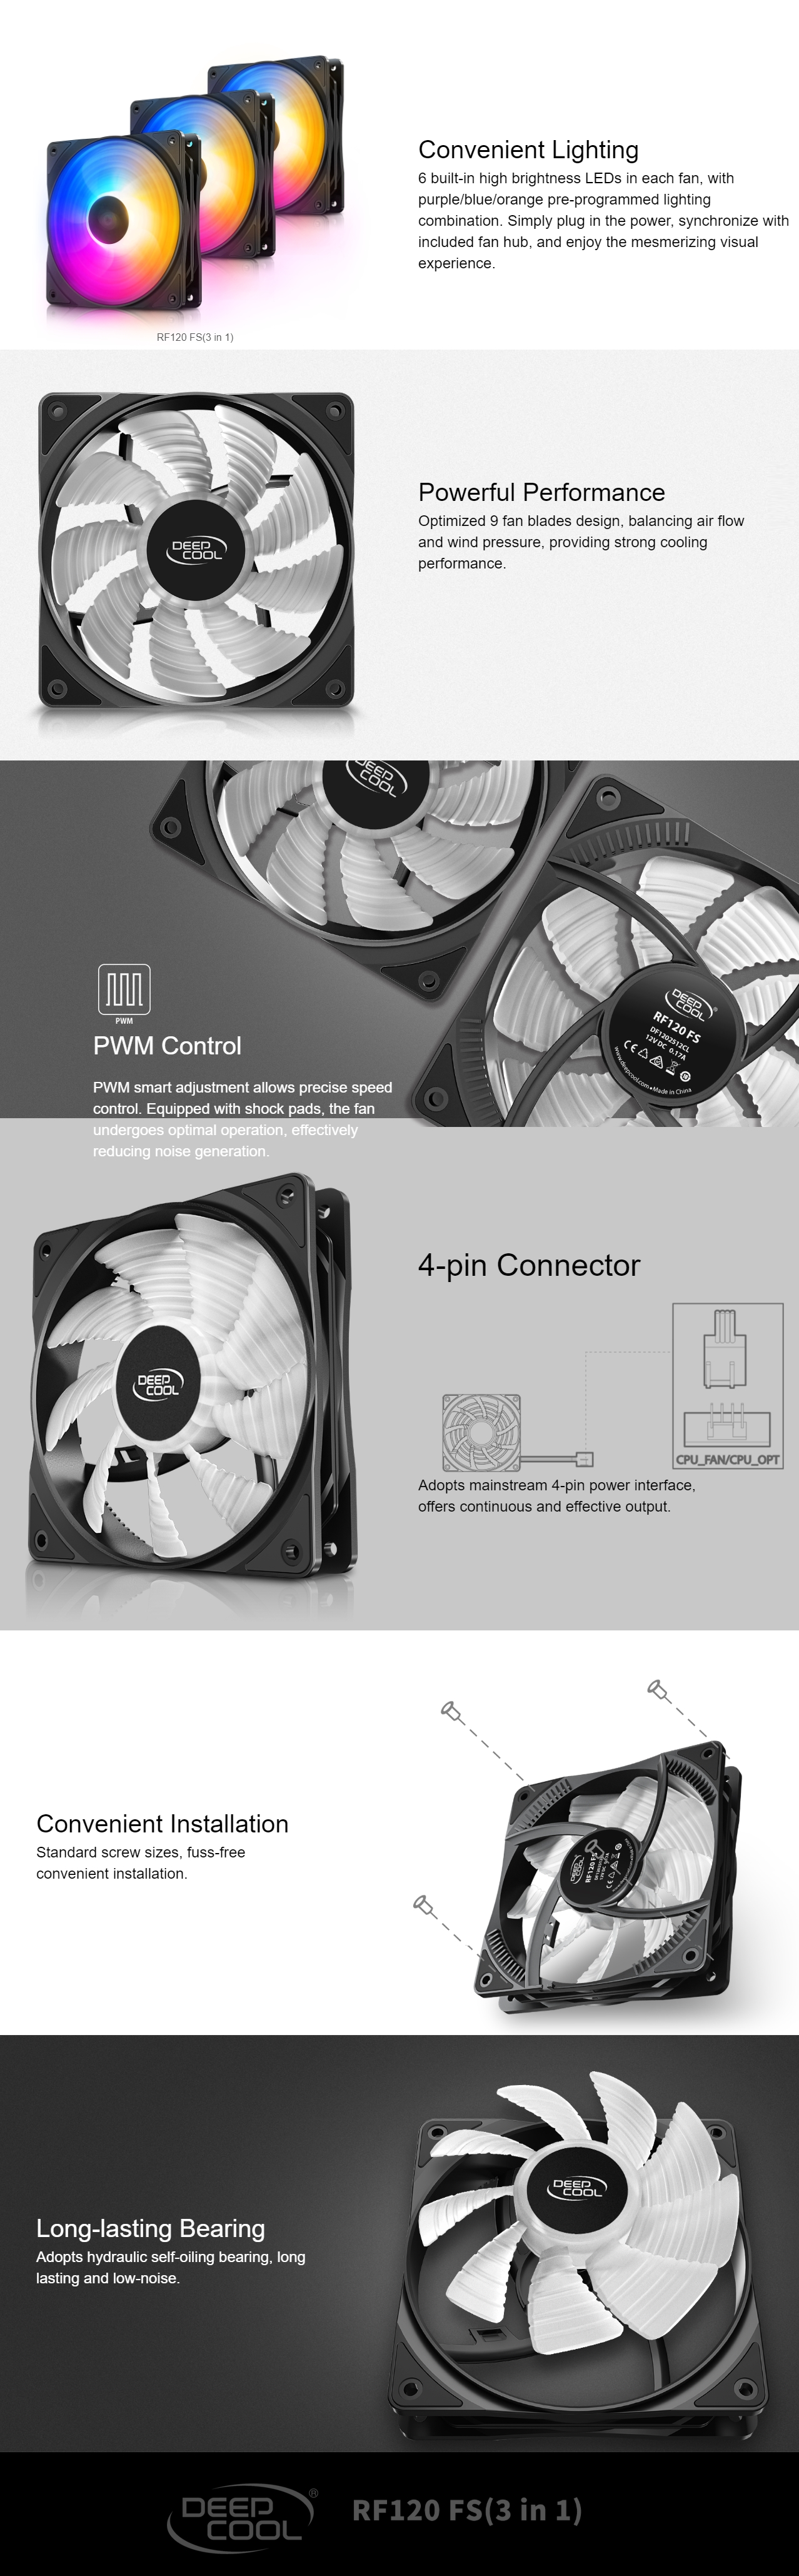 A large marketing image providing additional information about the product Deepcool RF120 FS 3 in 1 120mm Case Fan Pack - Additional alt info not provided